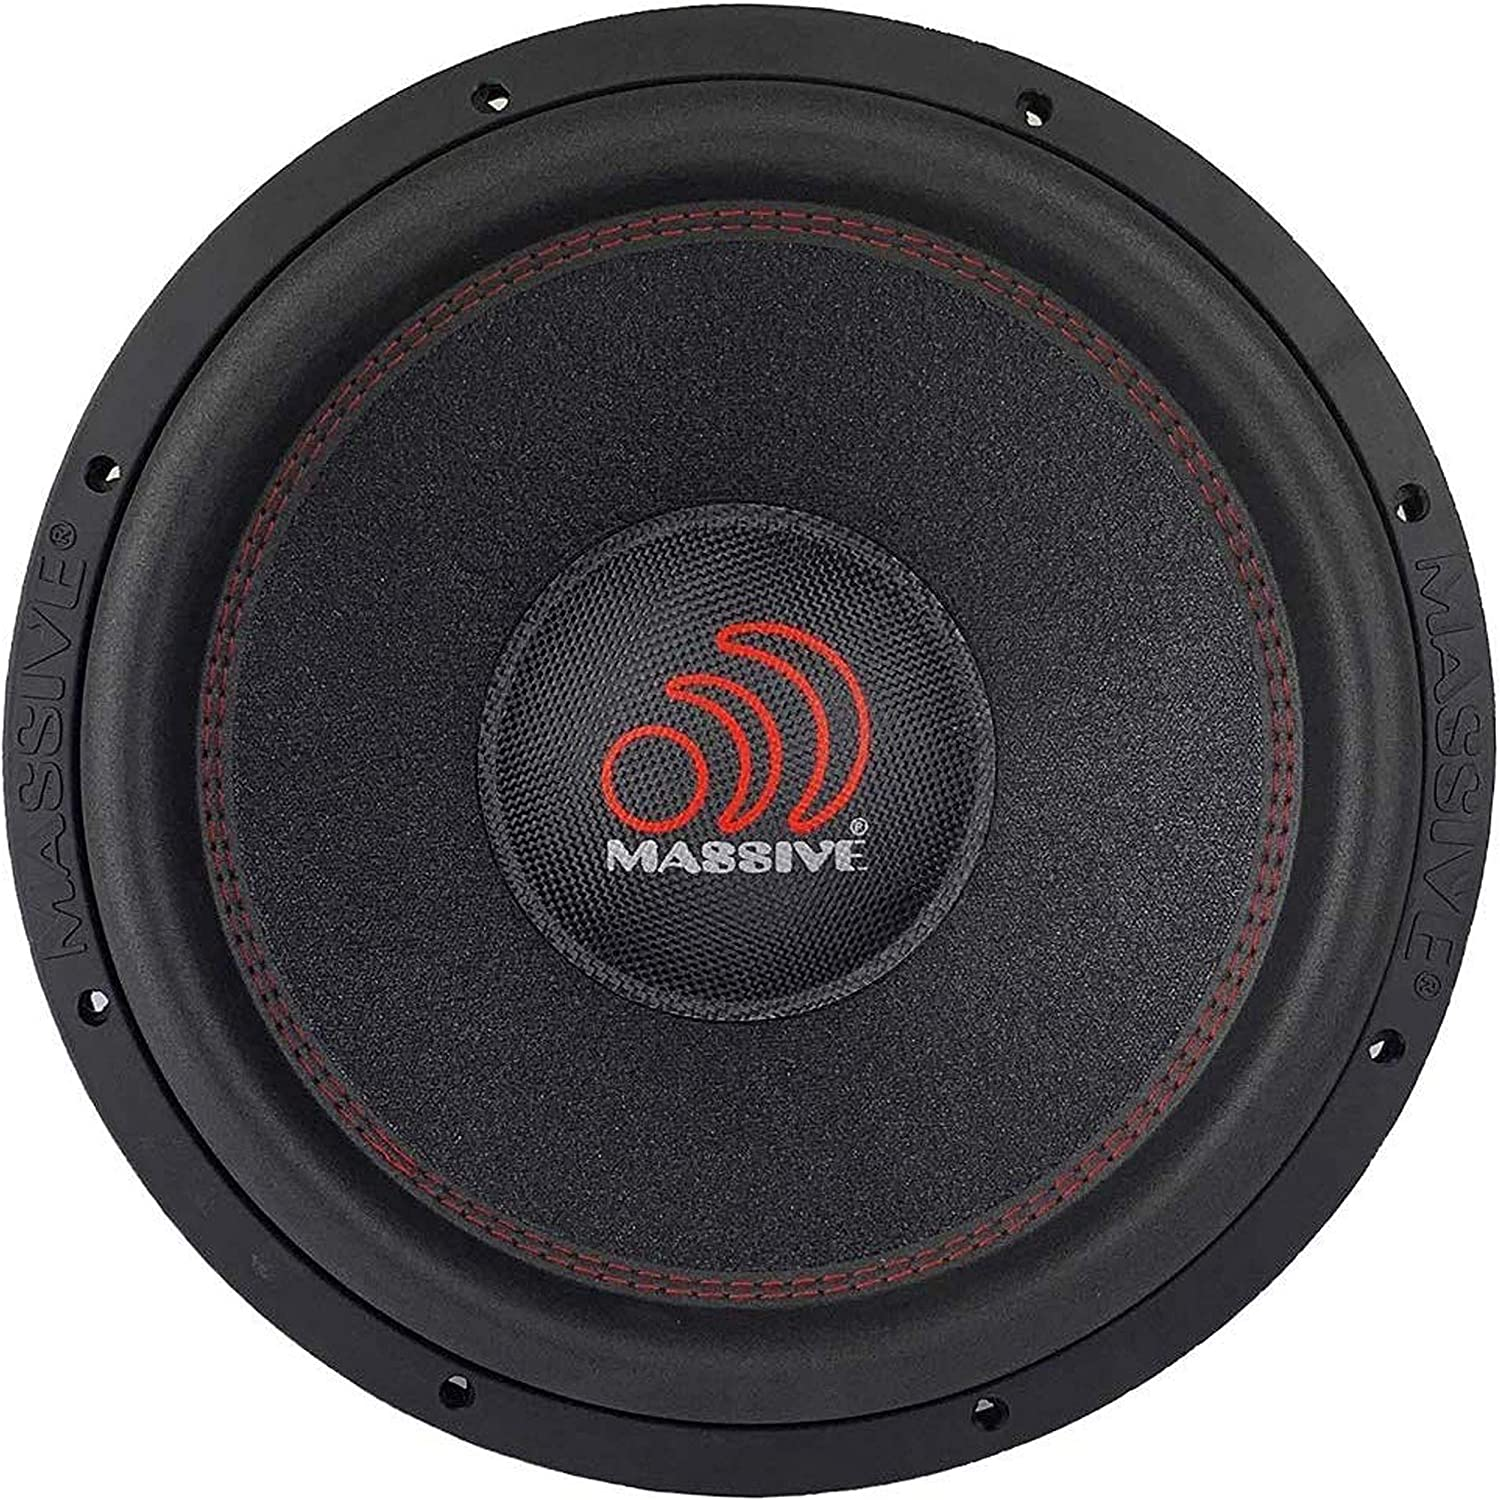 Car Subwoofer by Massive Audio KILOX154 15 Inch Car Audio 2,000 Watt MAX 1000w RMS High SPL Bass 15 Subwoofer 3 Inch Voice Coil Dual 4 Ohm Sold Individually Competition Subwoofer